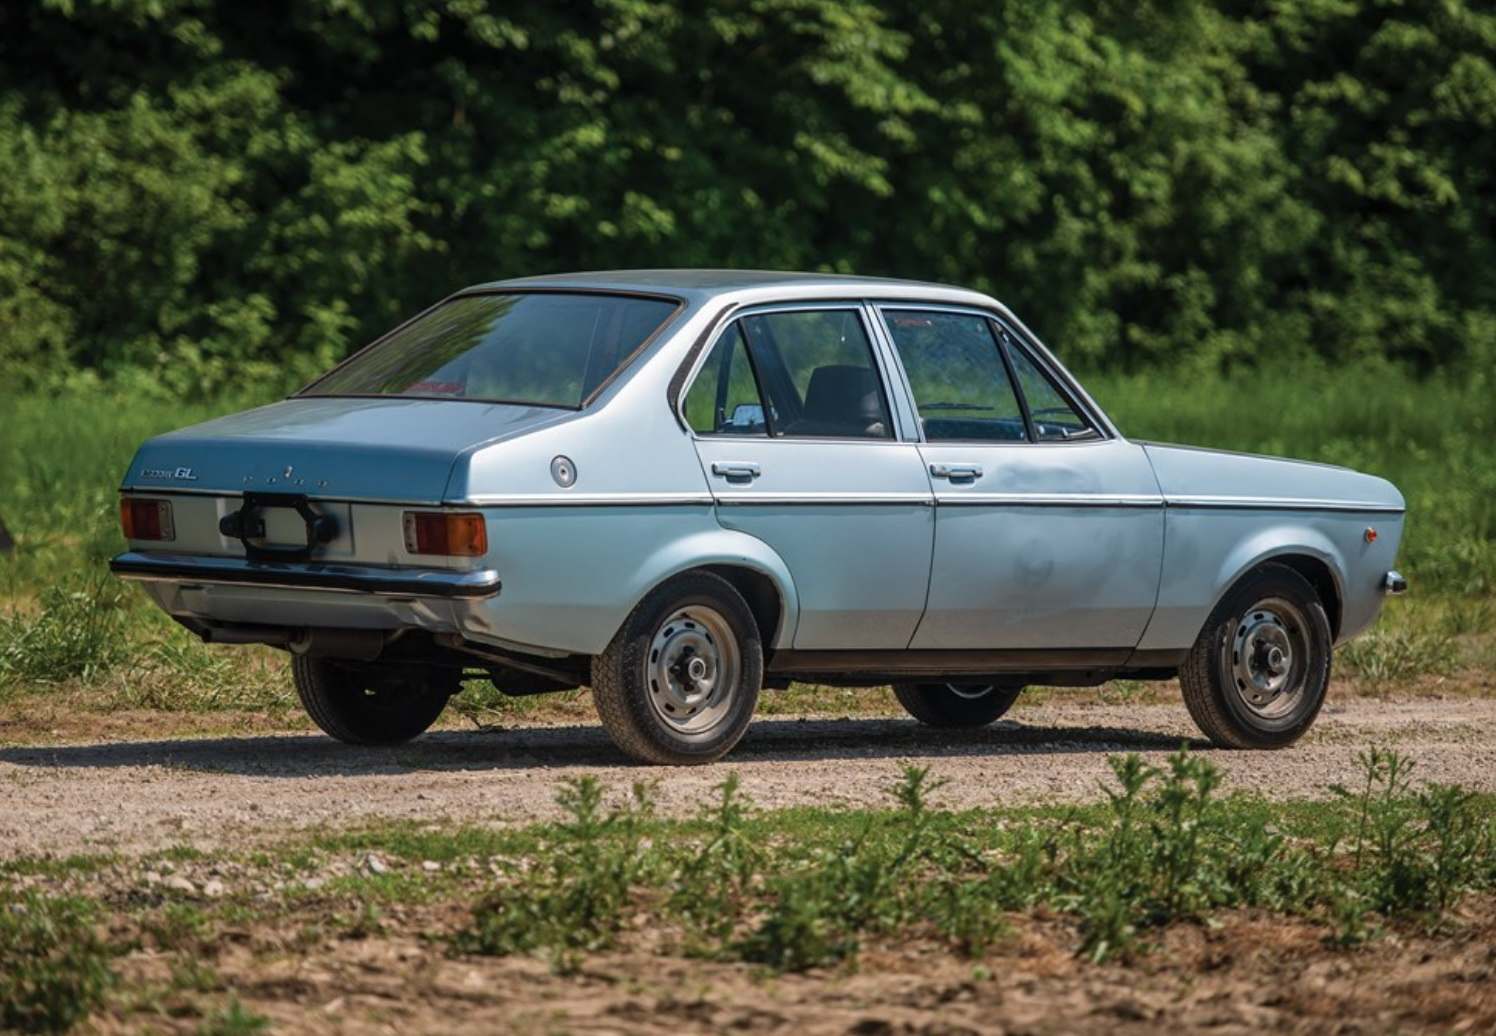 Pope's Ford Escort II